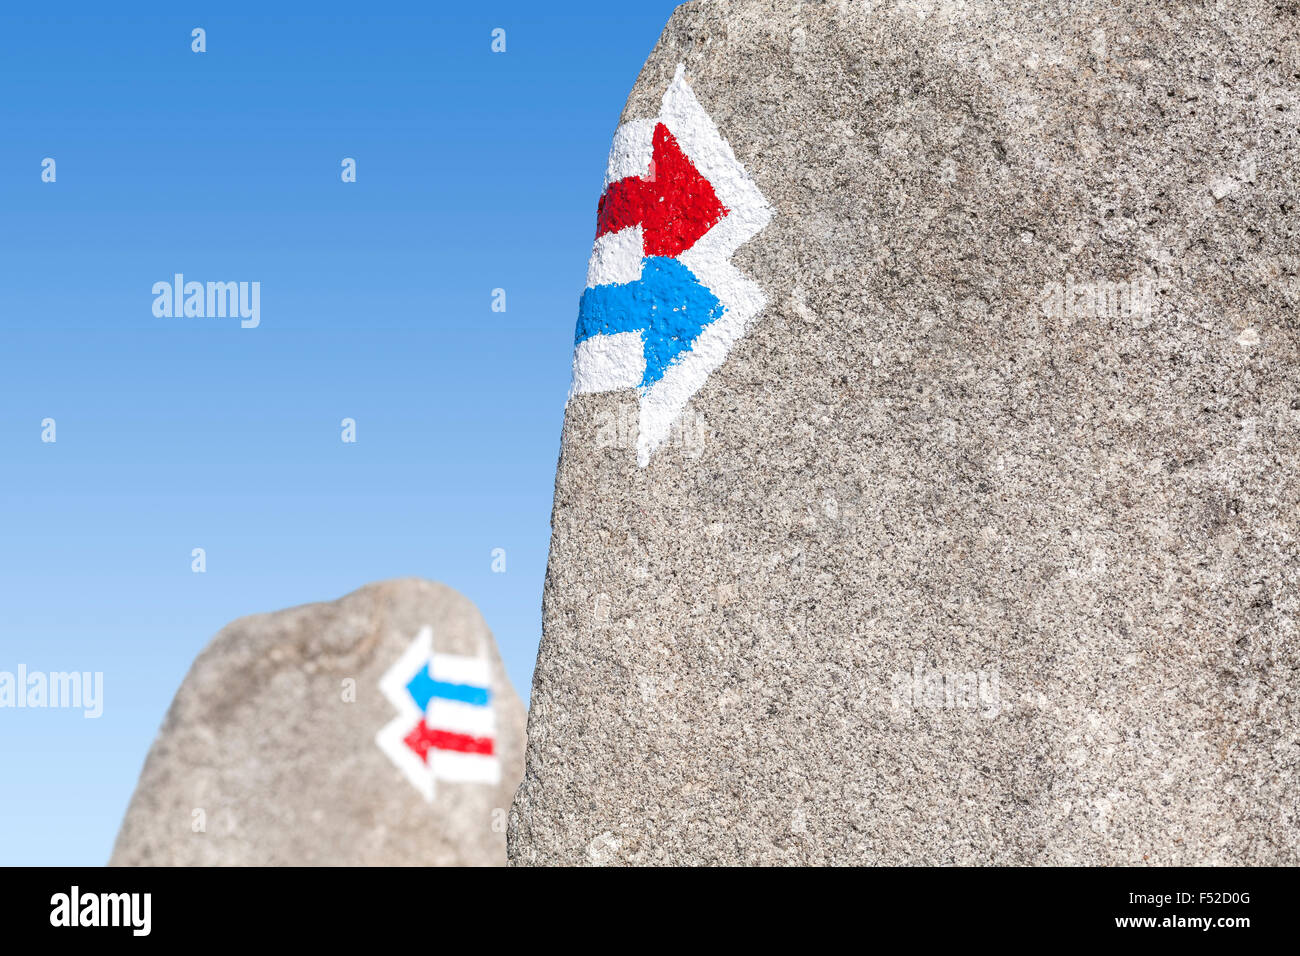 Trail signs painted on rock, choice or dilemma concept. Stock Photo